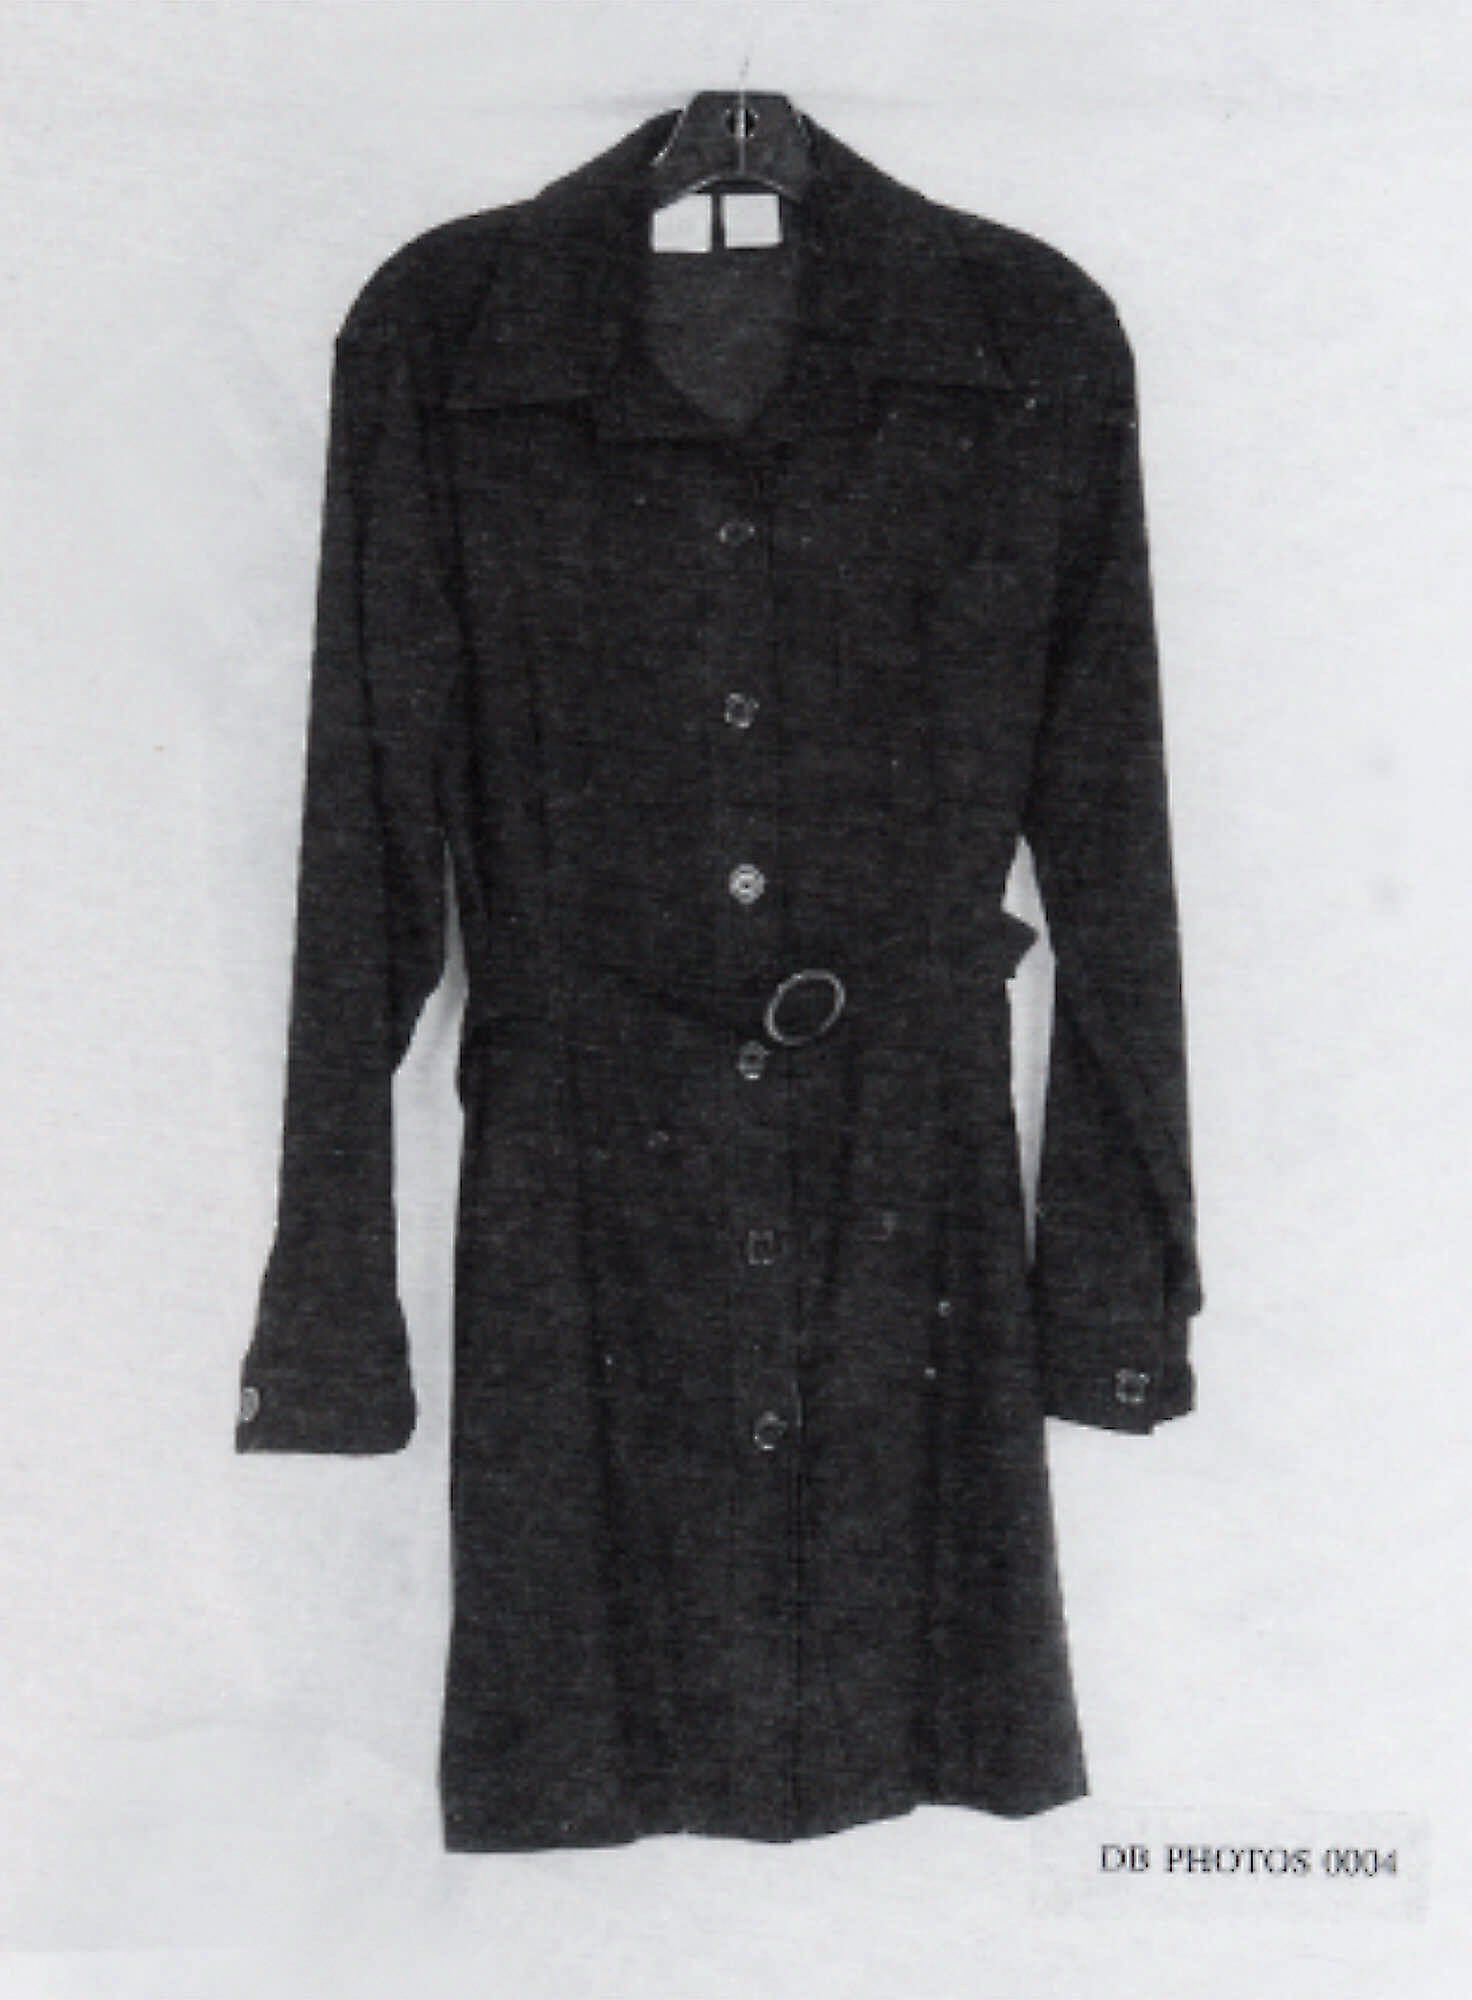 This is a photo from page 2991 of Independent Counsel Kenneth Starr's report showing Monica Lewinsky's dress which was tested for physical evidence of a relationship between President Clinton and Monica Lewinsky.